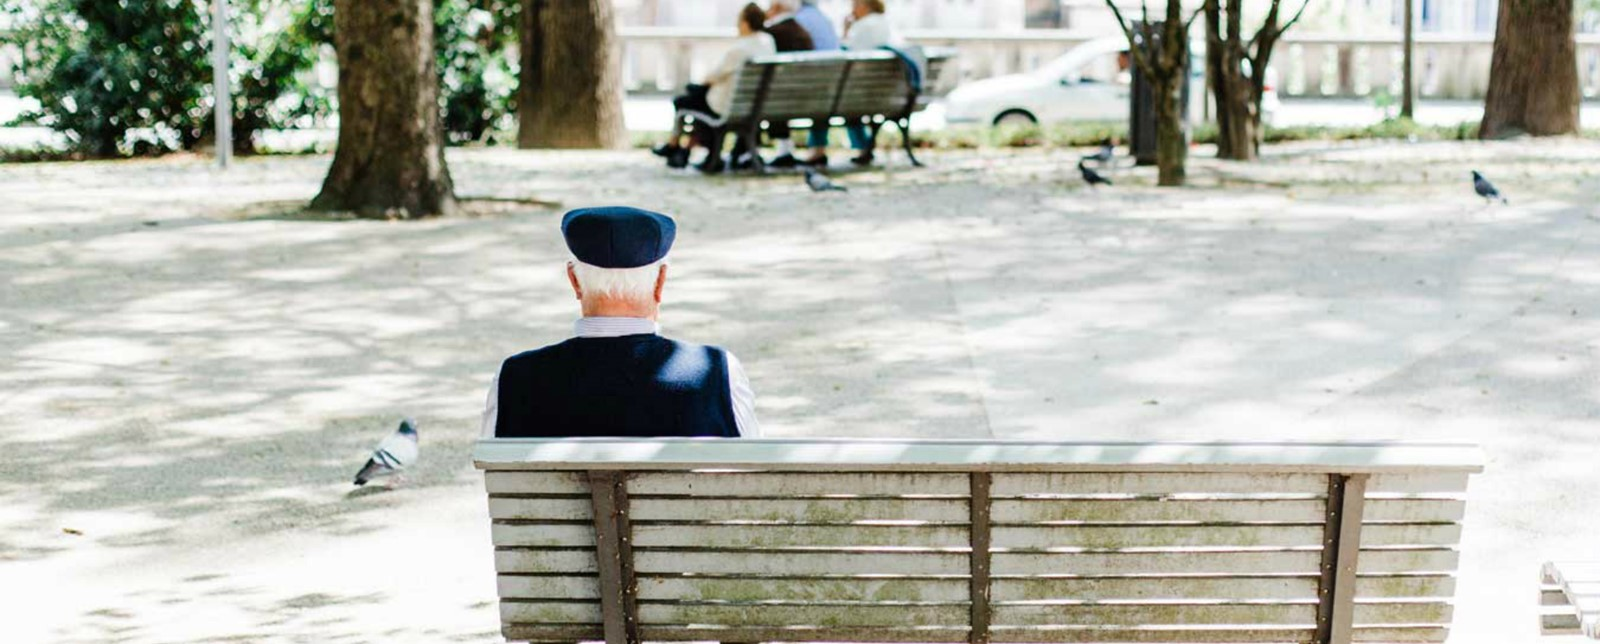 An old man sitting on a park bench